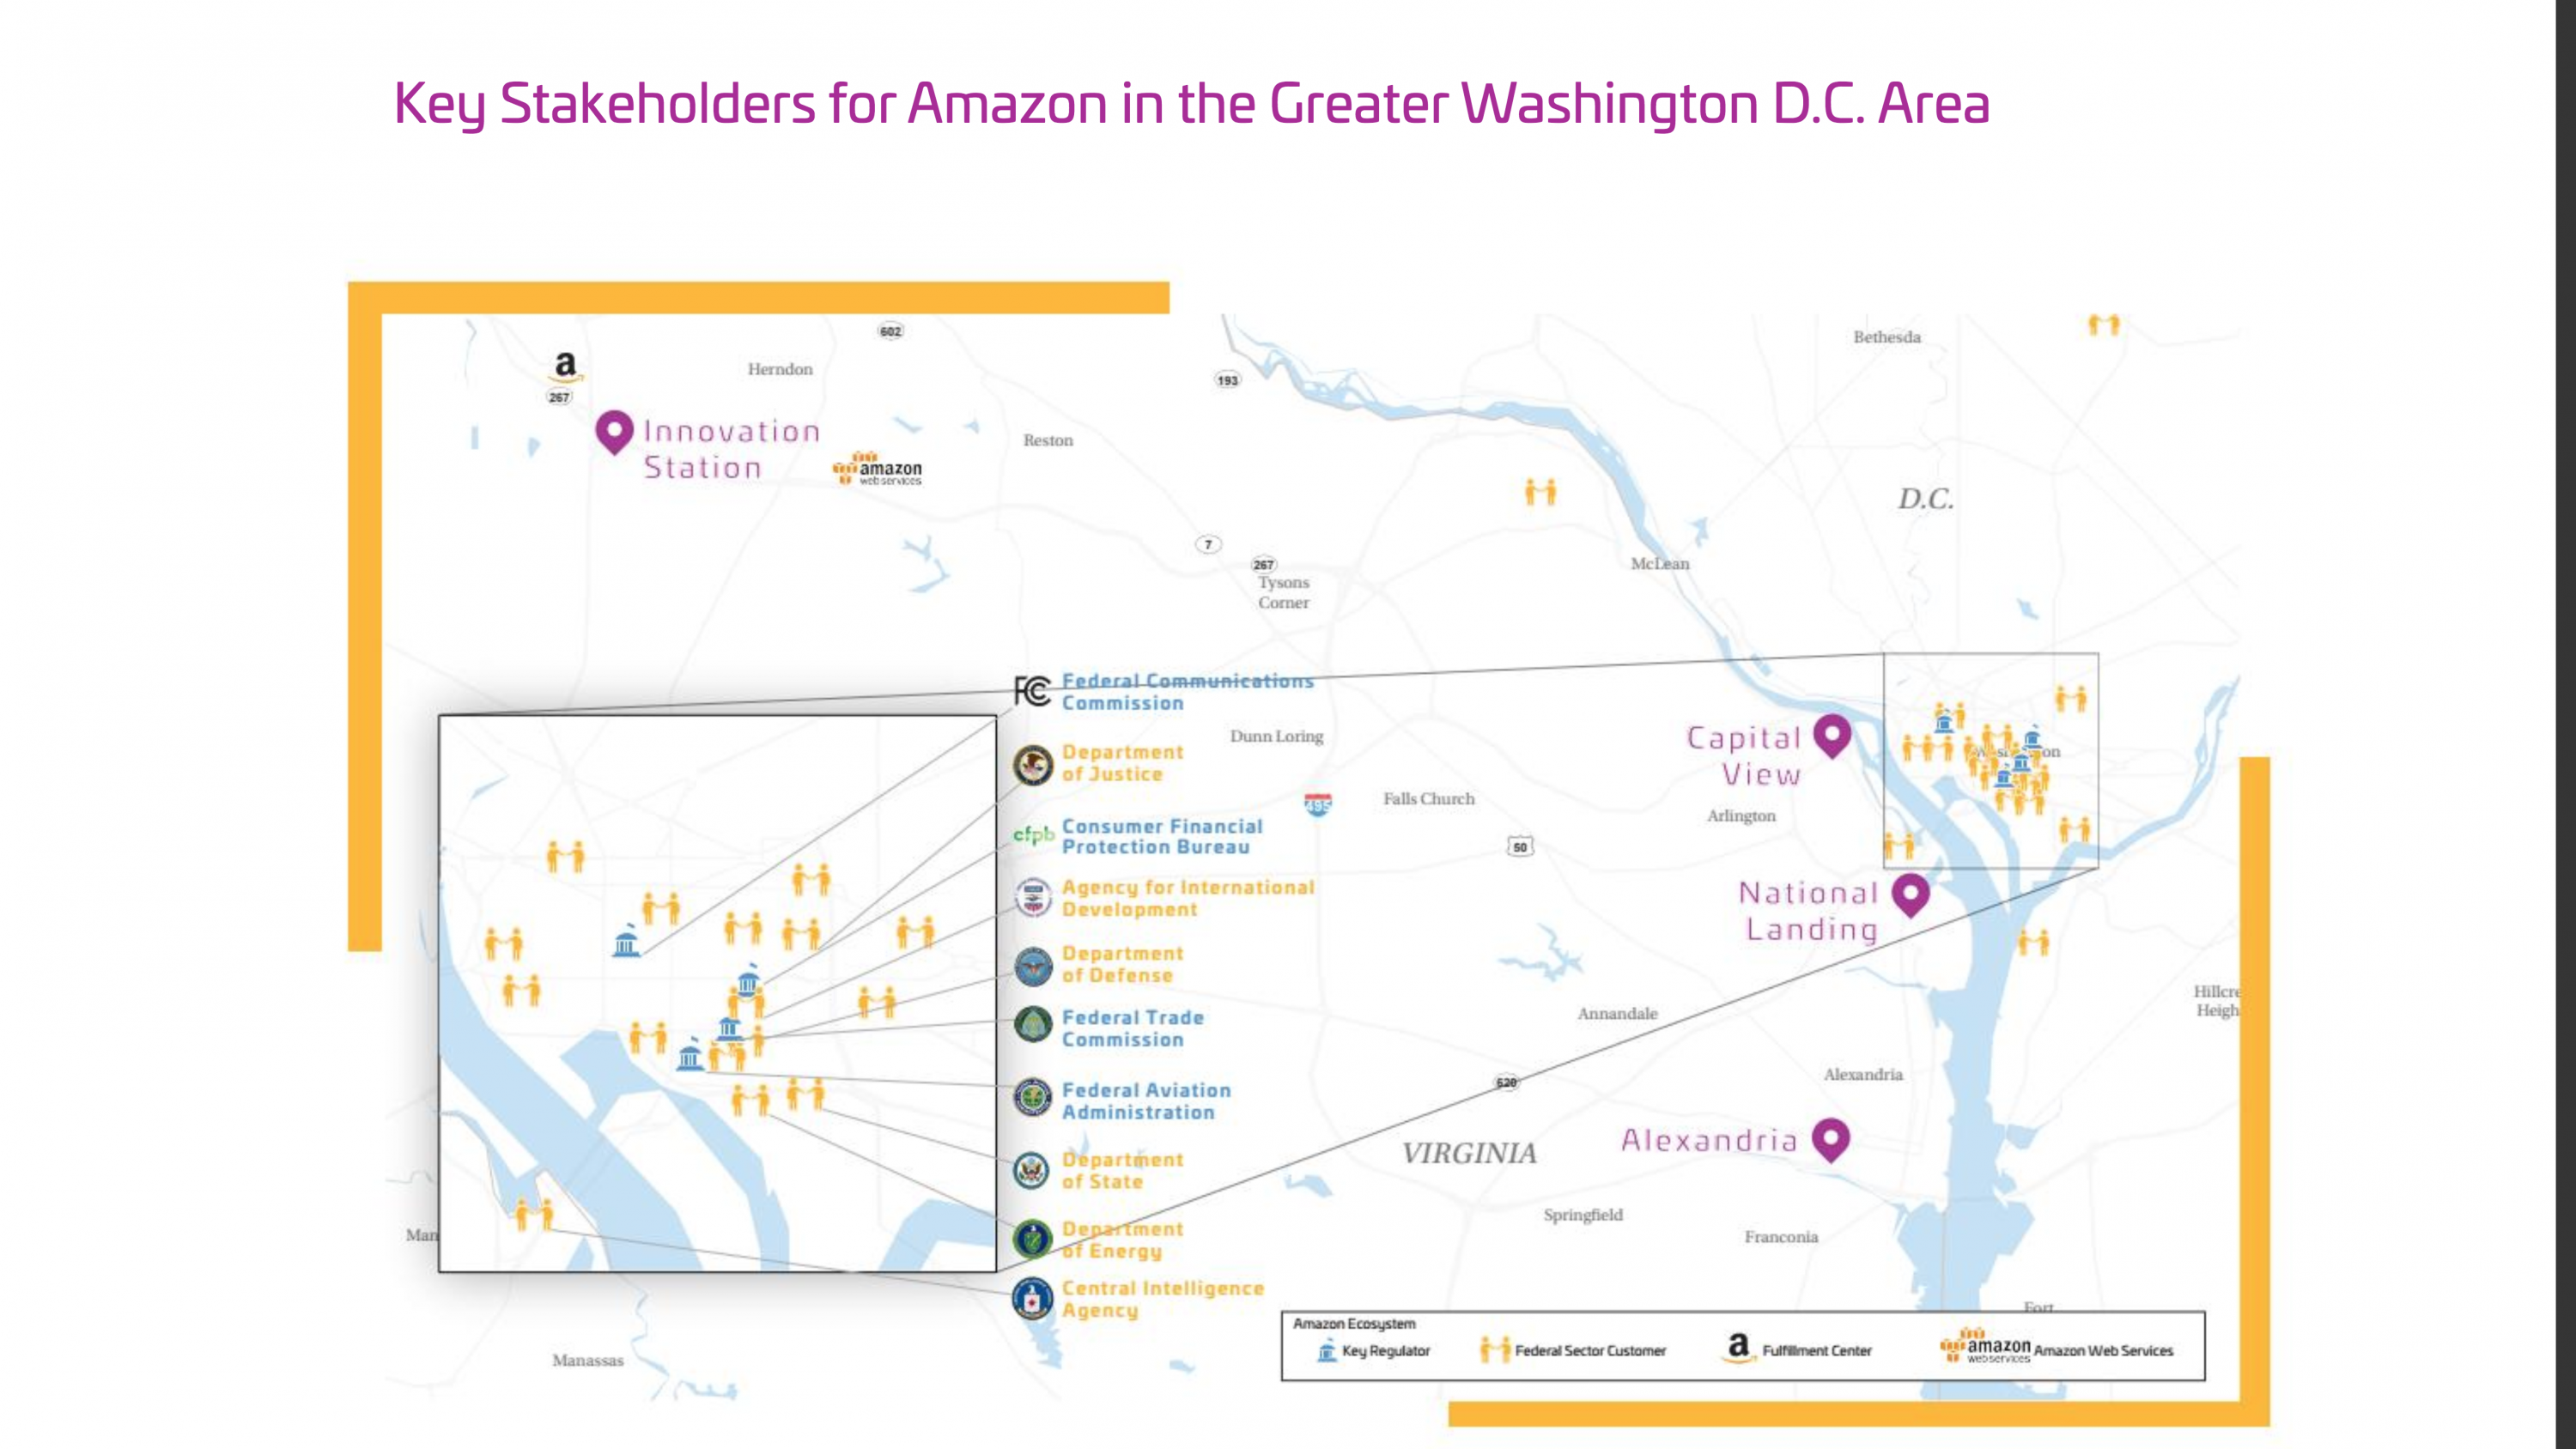 Virginia Drew an Actual Map for Amazon to Influence Washington on google map, deforestation map, kilimanjaro map, costa rica map, nile map, la paz capital map, danube river map, indus river map, congo river map, yellow river map, yangtze map, brazil map, orinoco map, atacama desert map, rio grande map, andes map, himalayas map, pampas map, buenos aires map, brazilian highlands map,